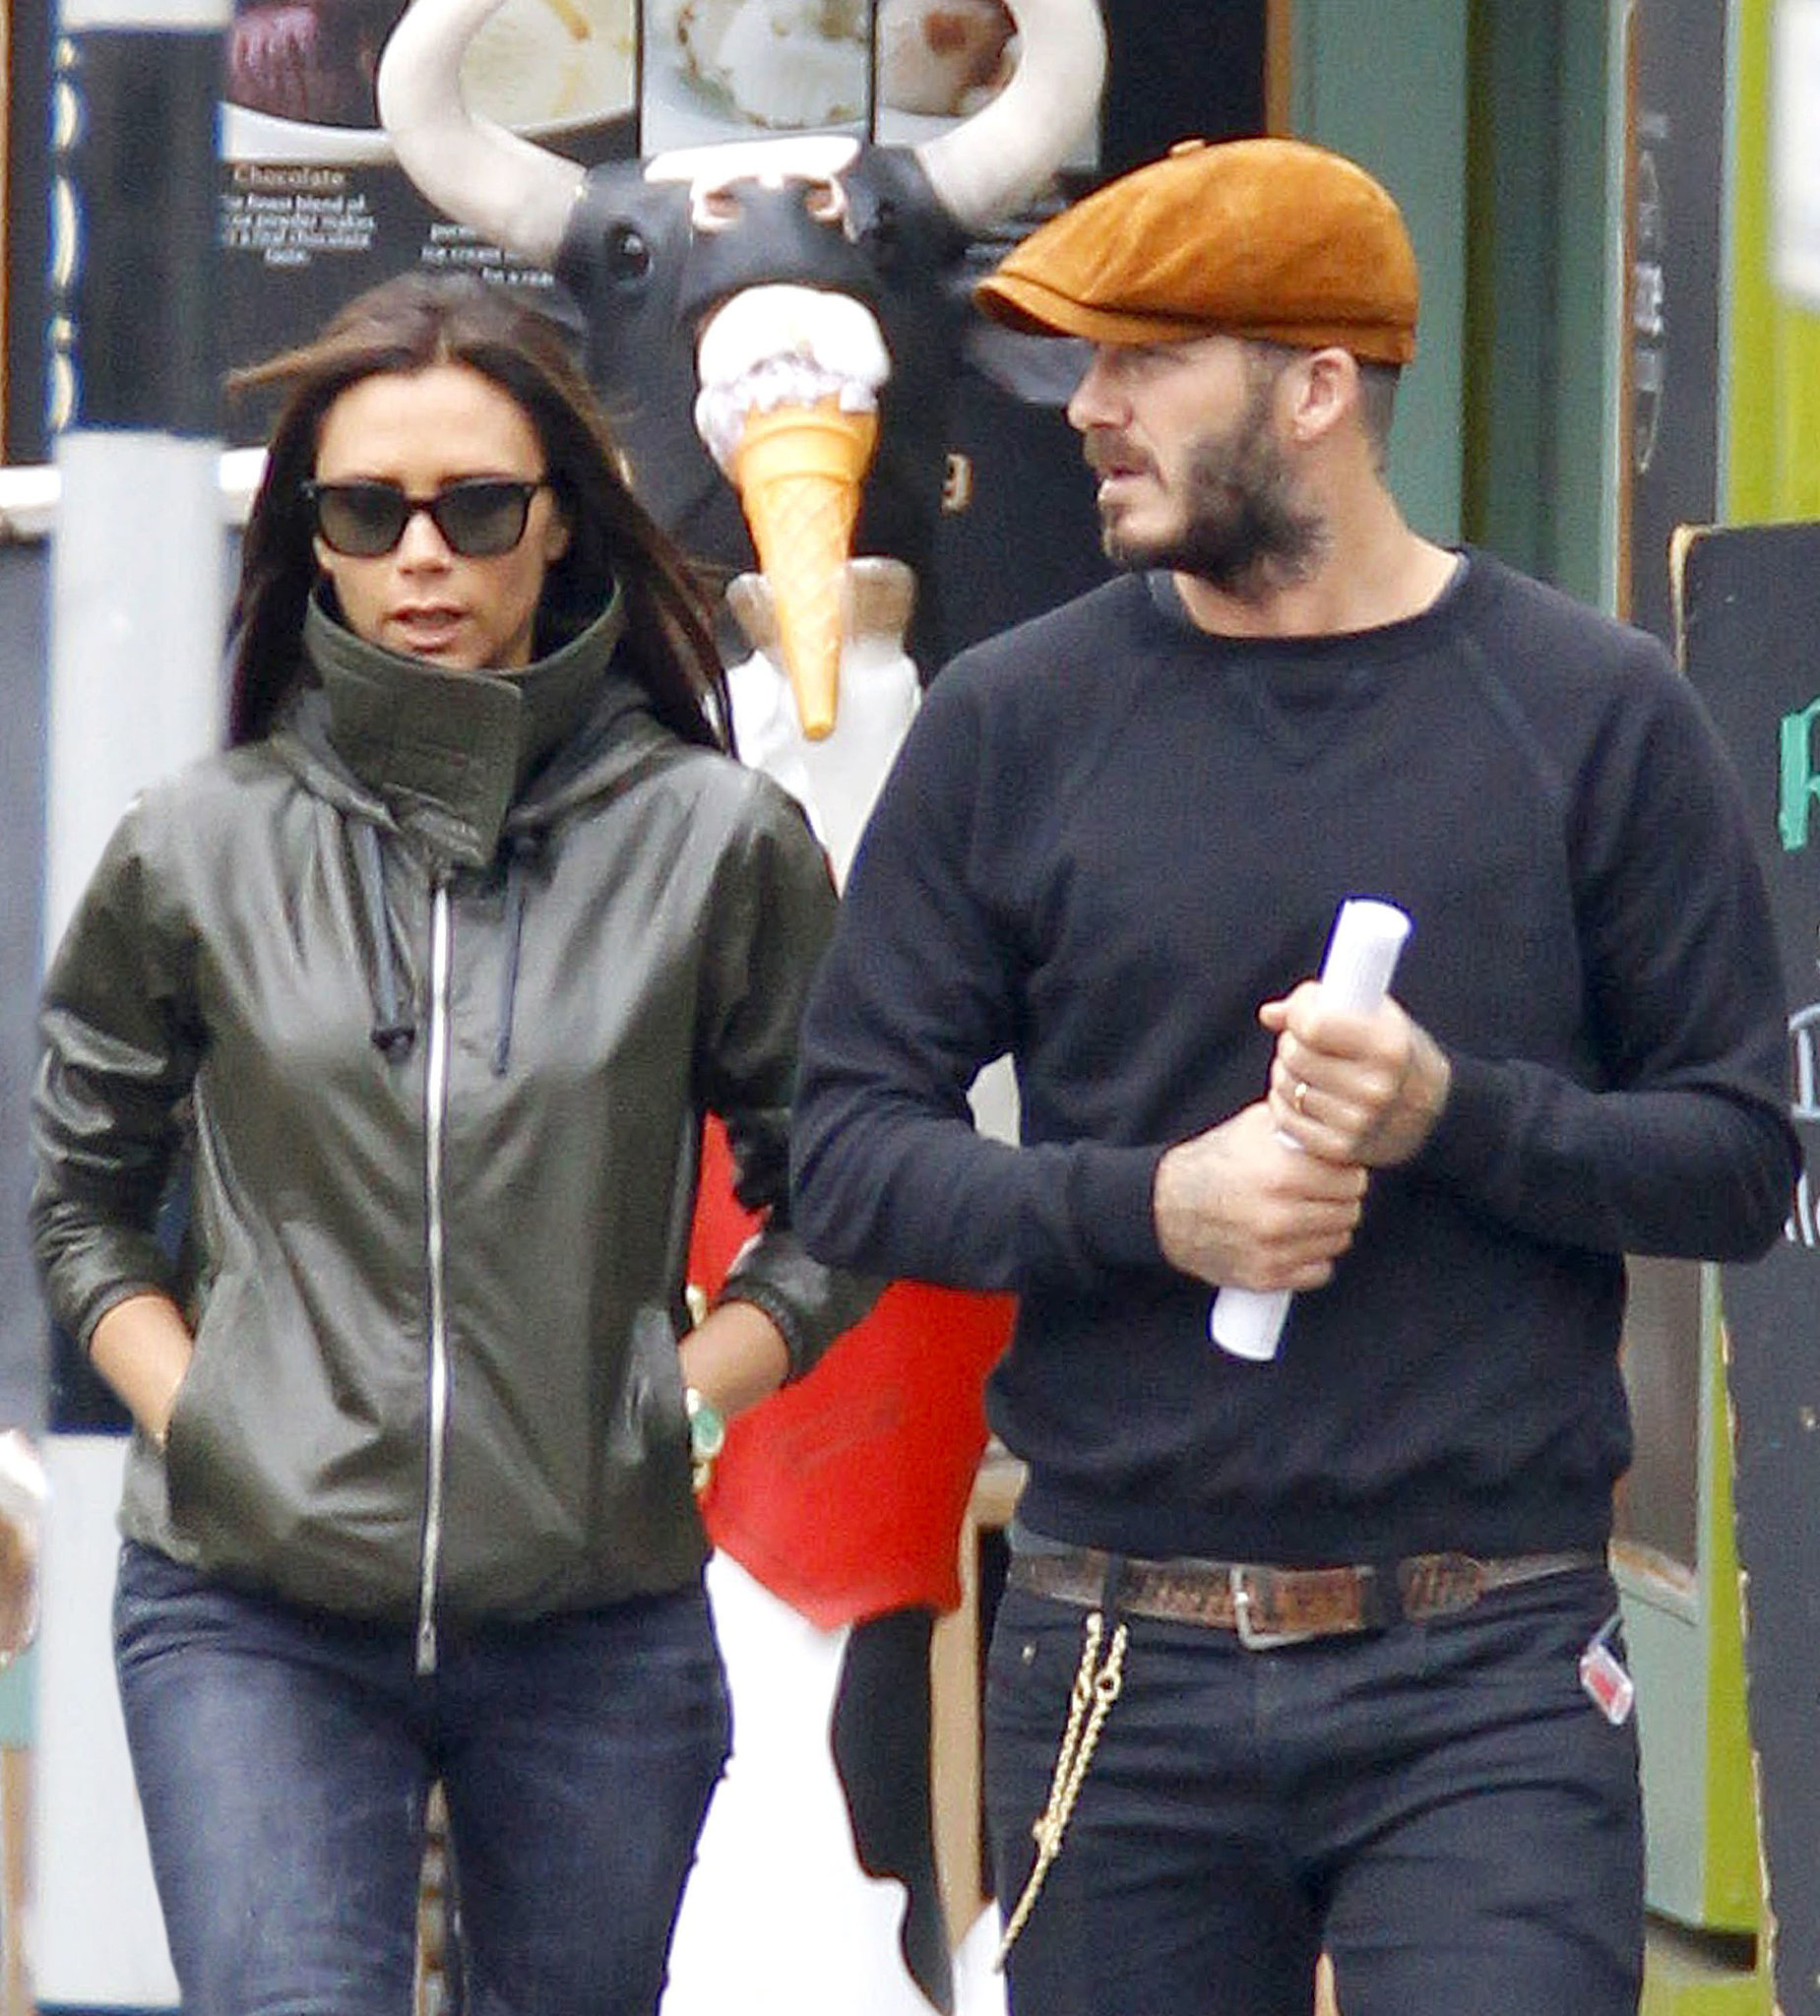 Victoria and David Beckham stepped out looking incognito in London on Monday.